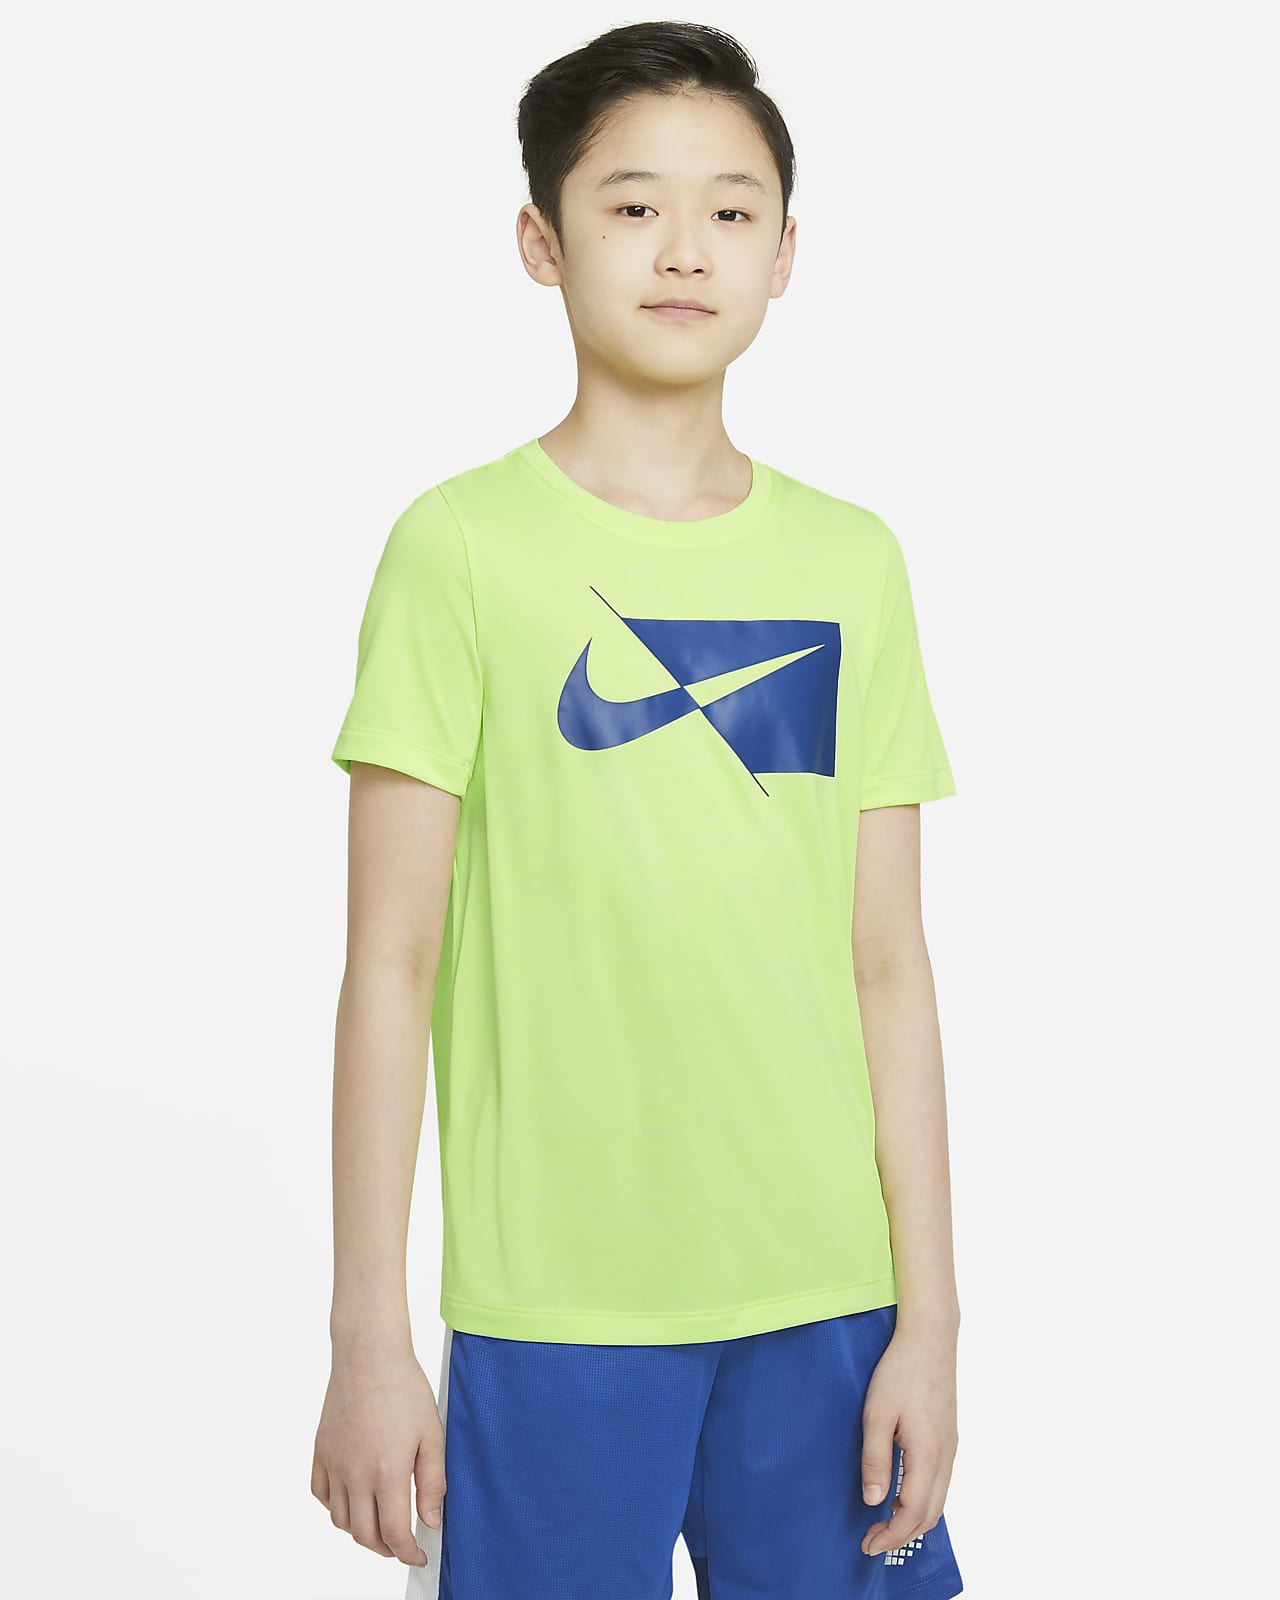 Nike Big Kids' (Boys') Short-Sleeve Training Top